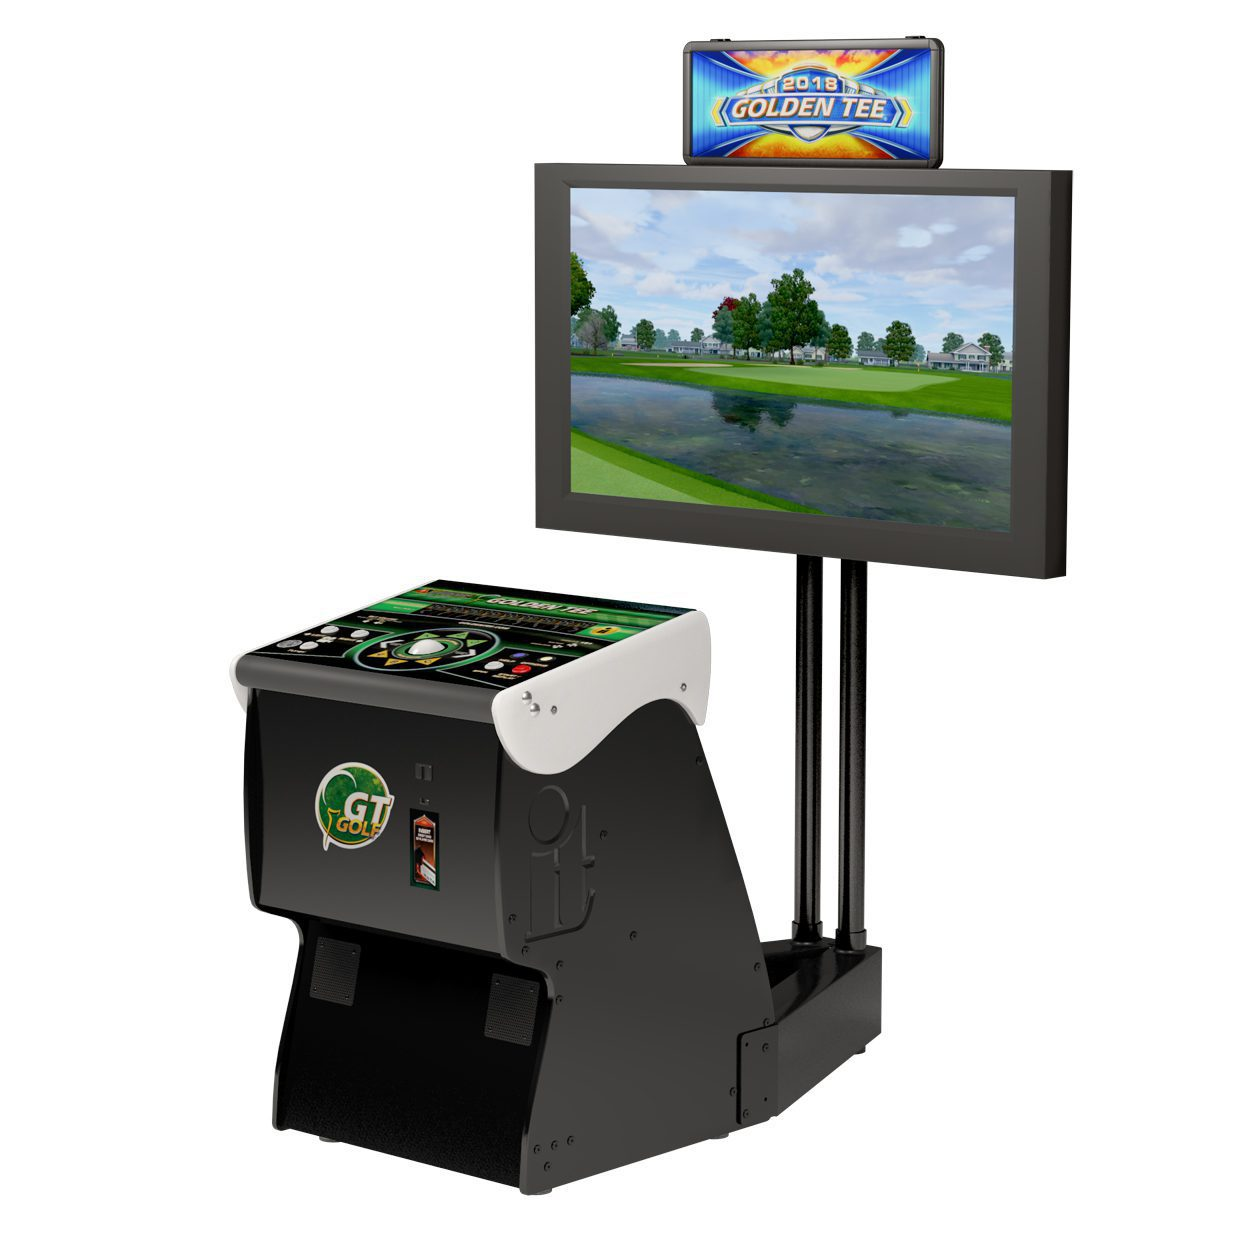 Golden Tee 2018 Home Edition